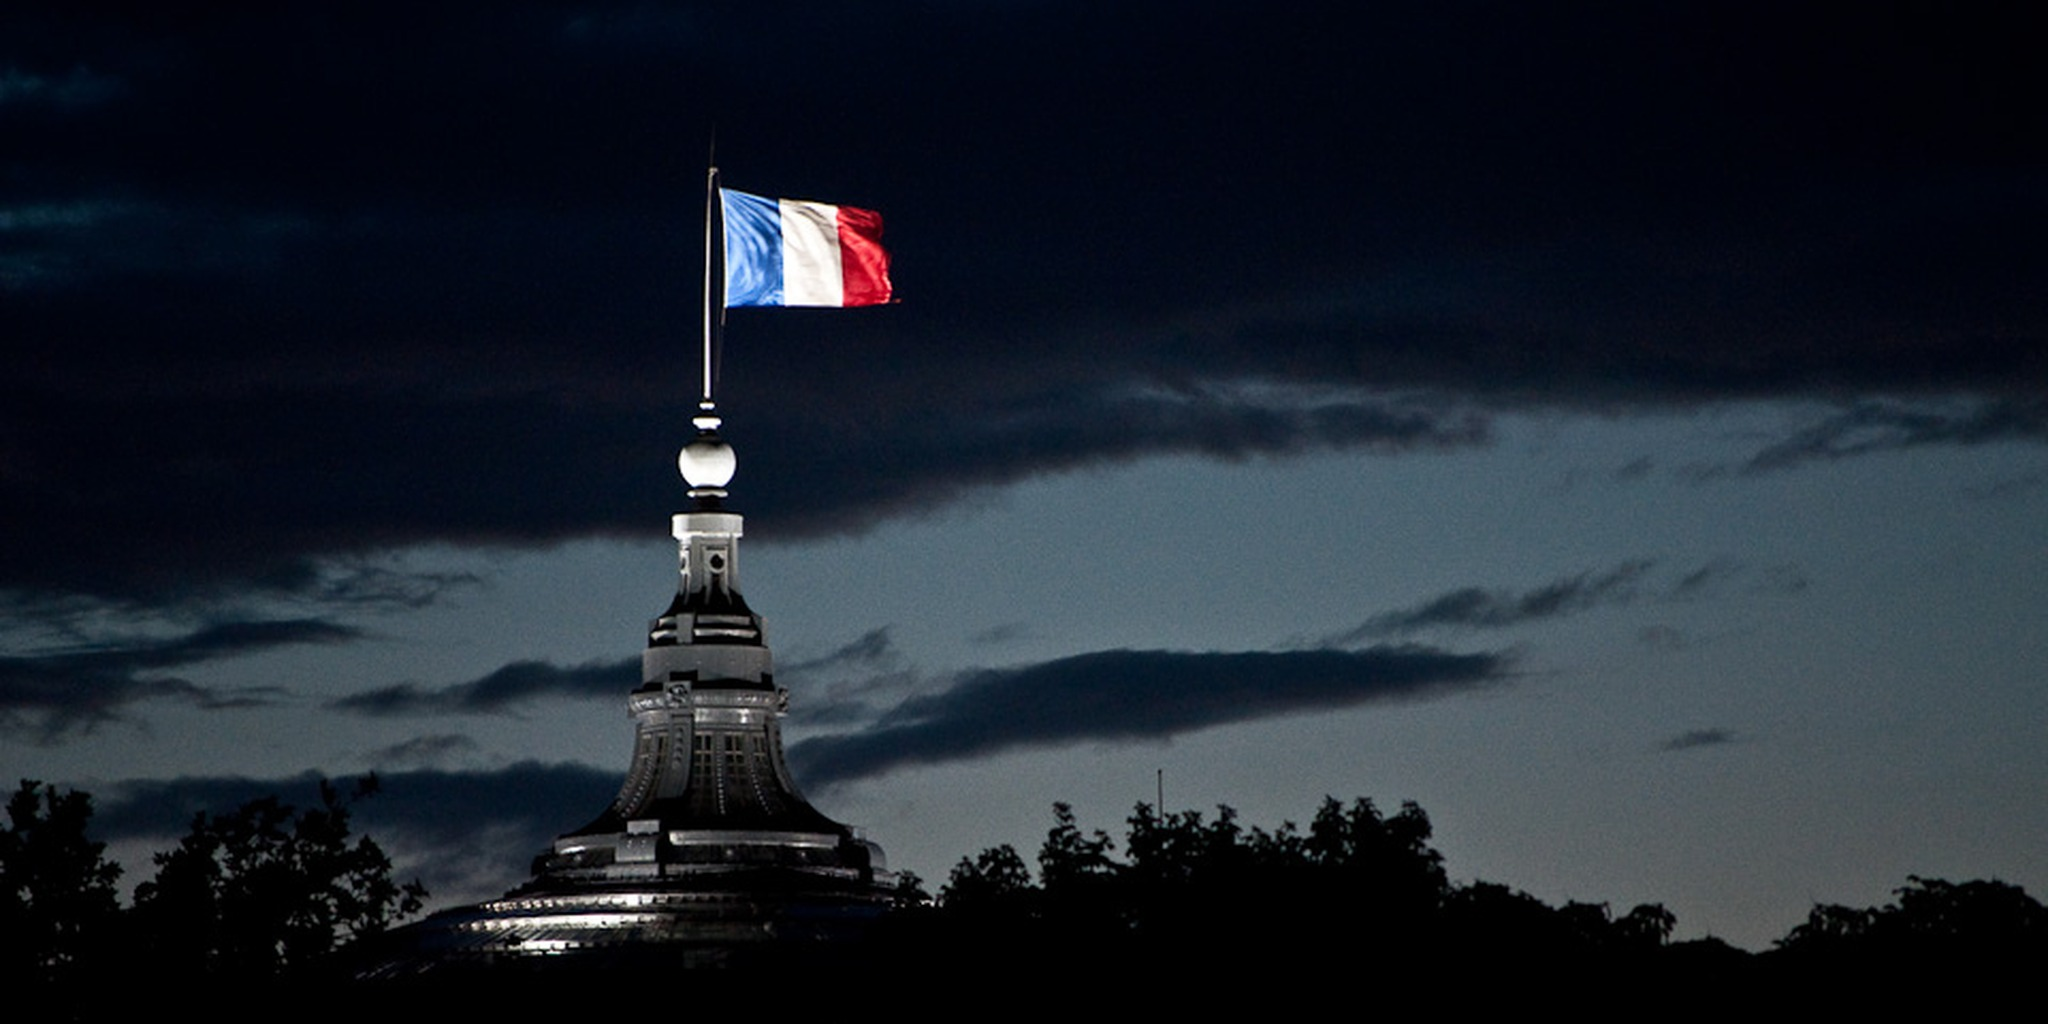 French Flag flying | Flickr - Photo Sharing!